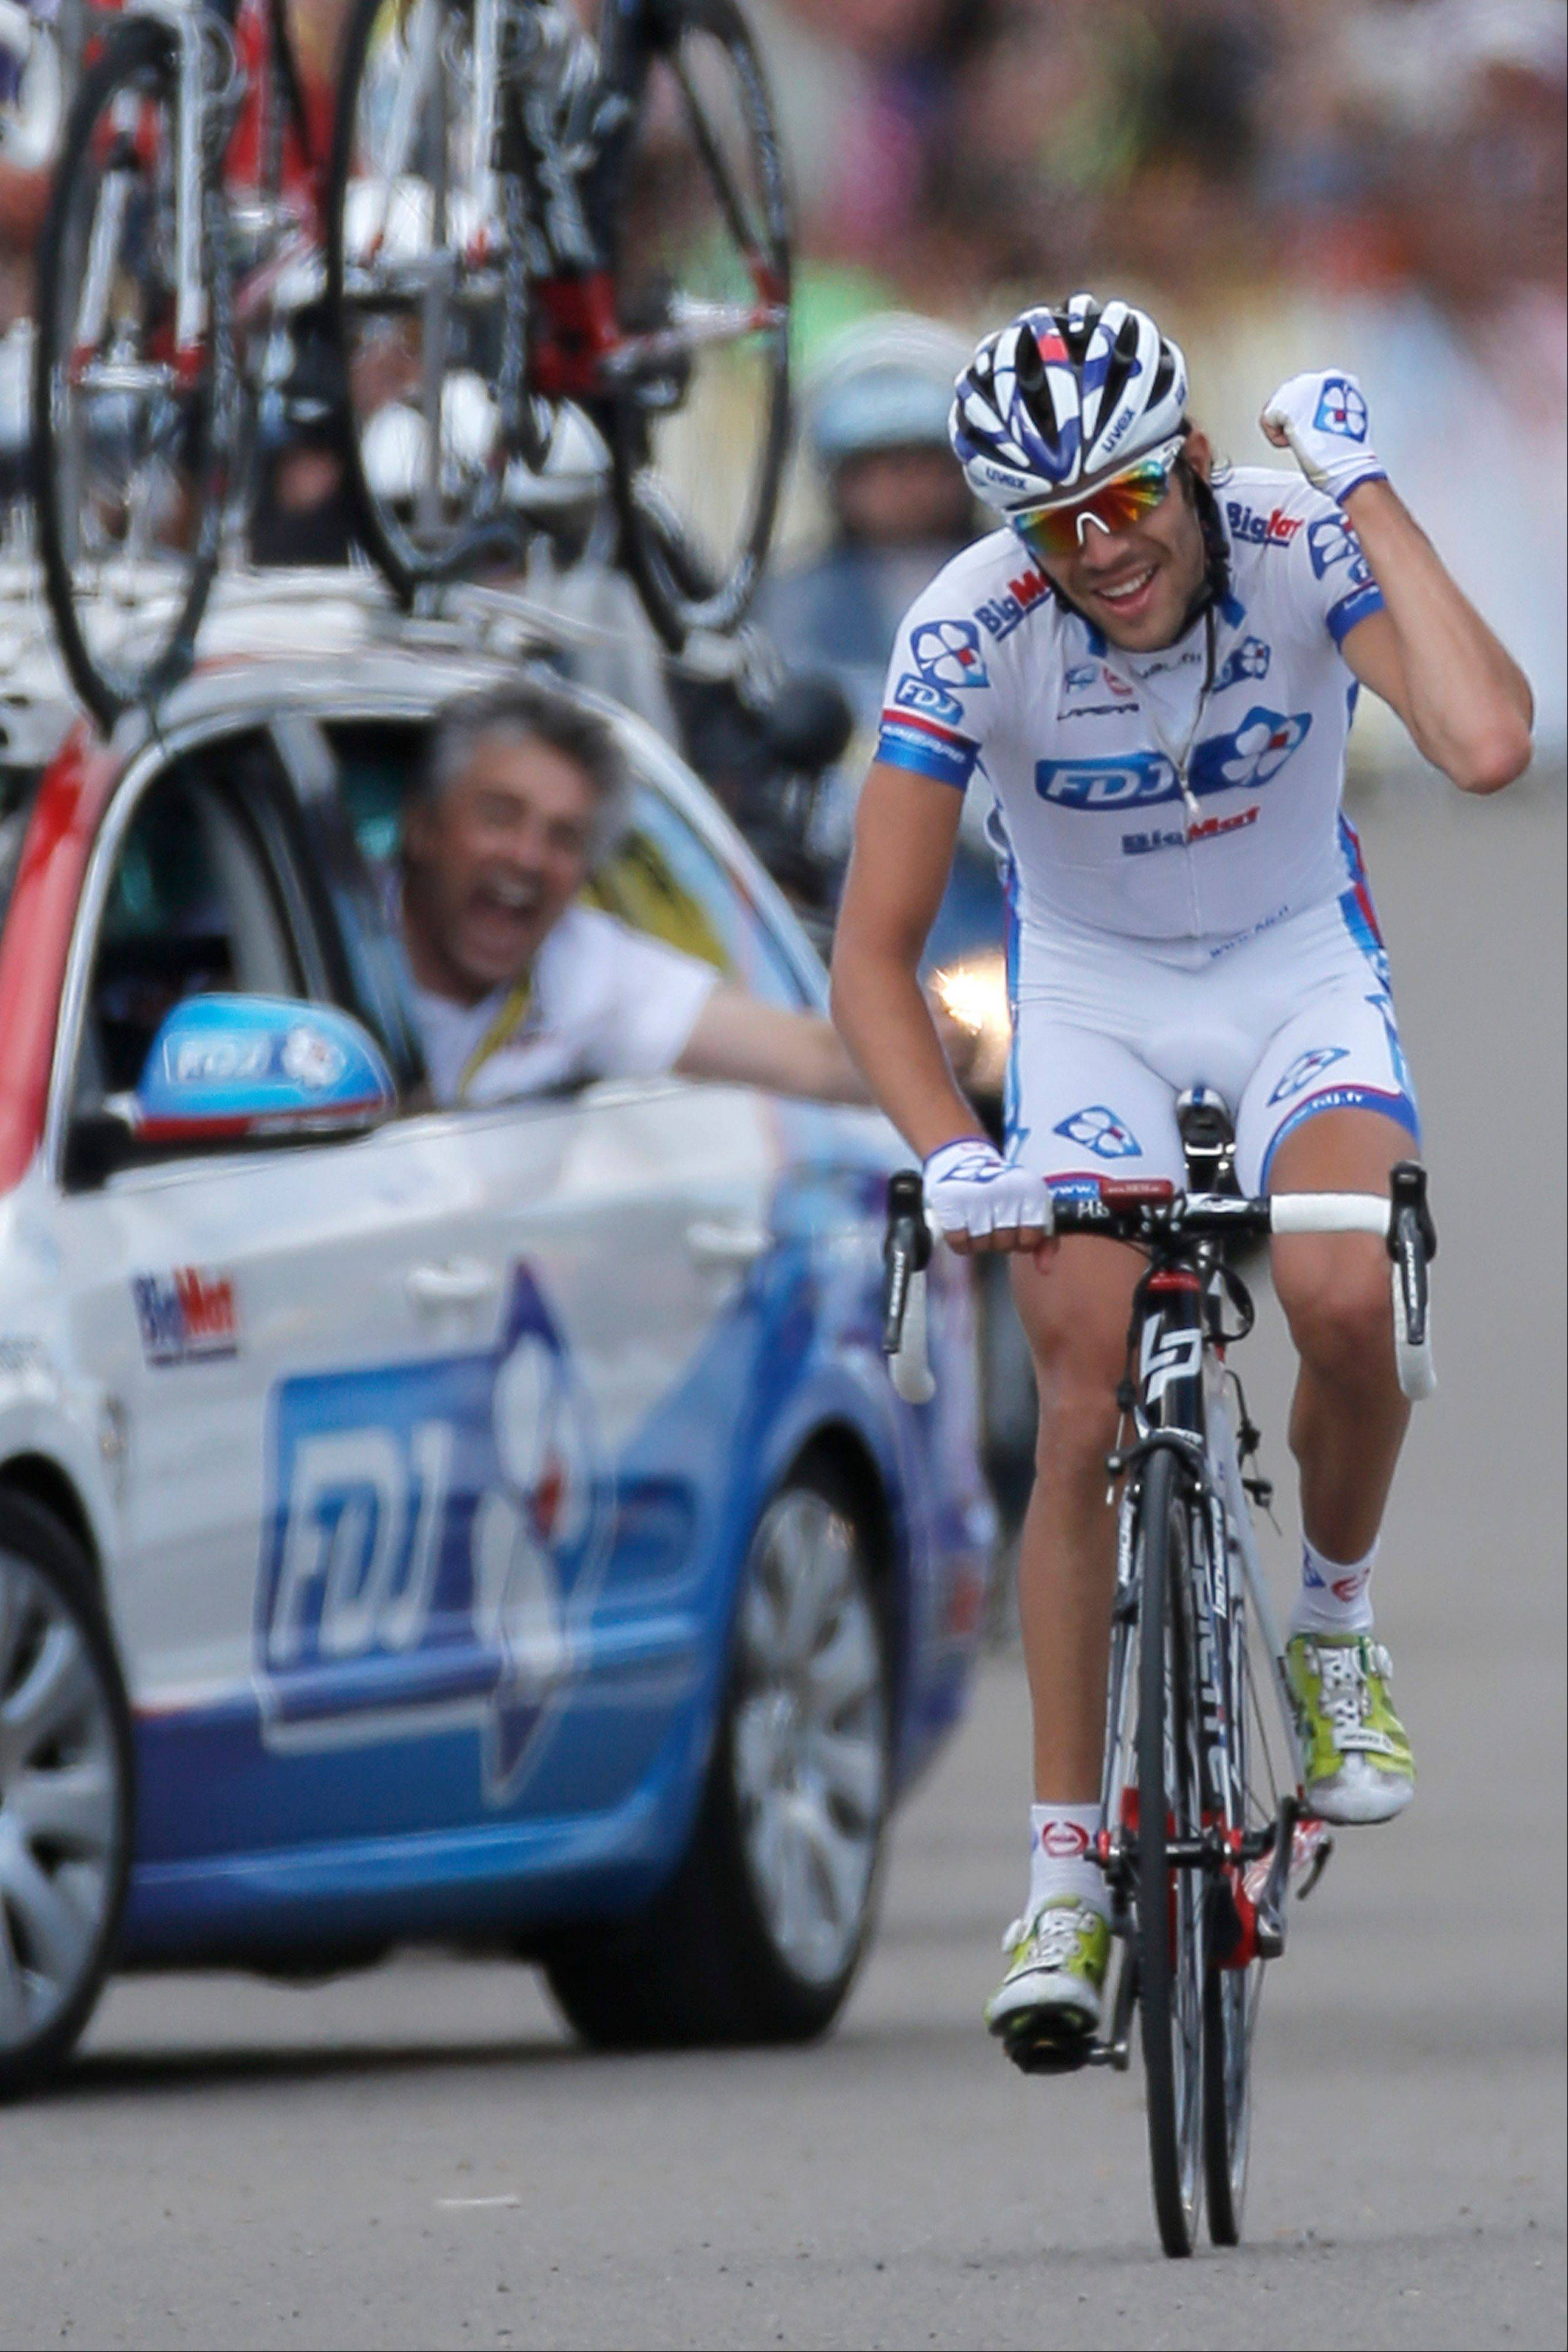 Team director Marc Madiot, left, celebrates in his car as Thibaut Pinot of France crosses the finish line Sunday to win the eighth stage of the Tour de France.